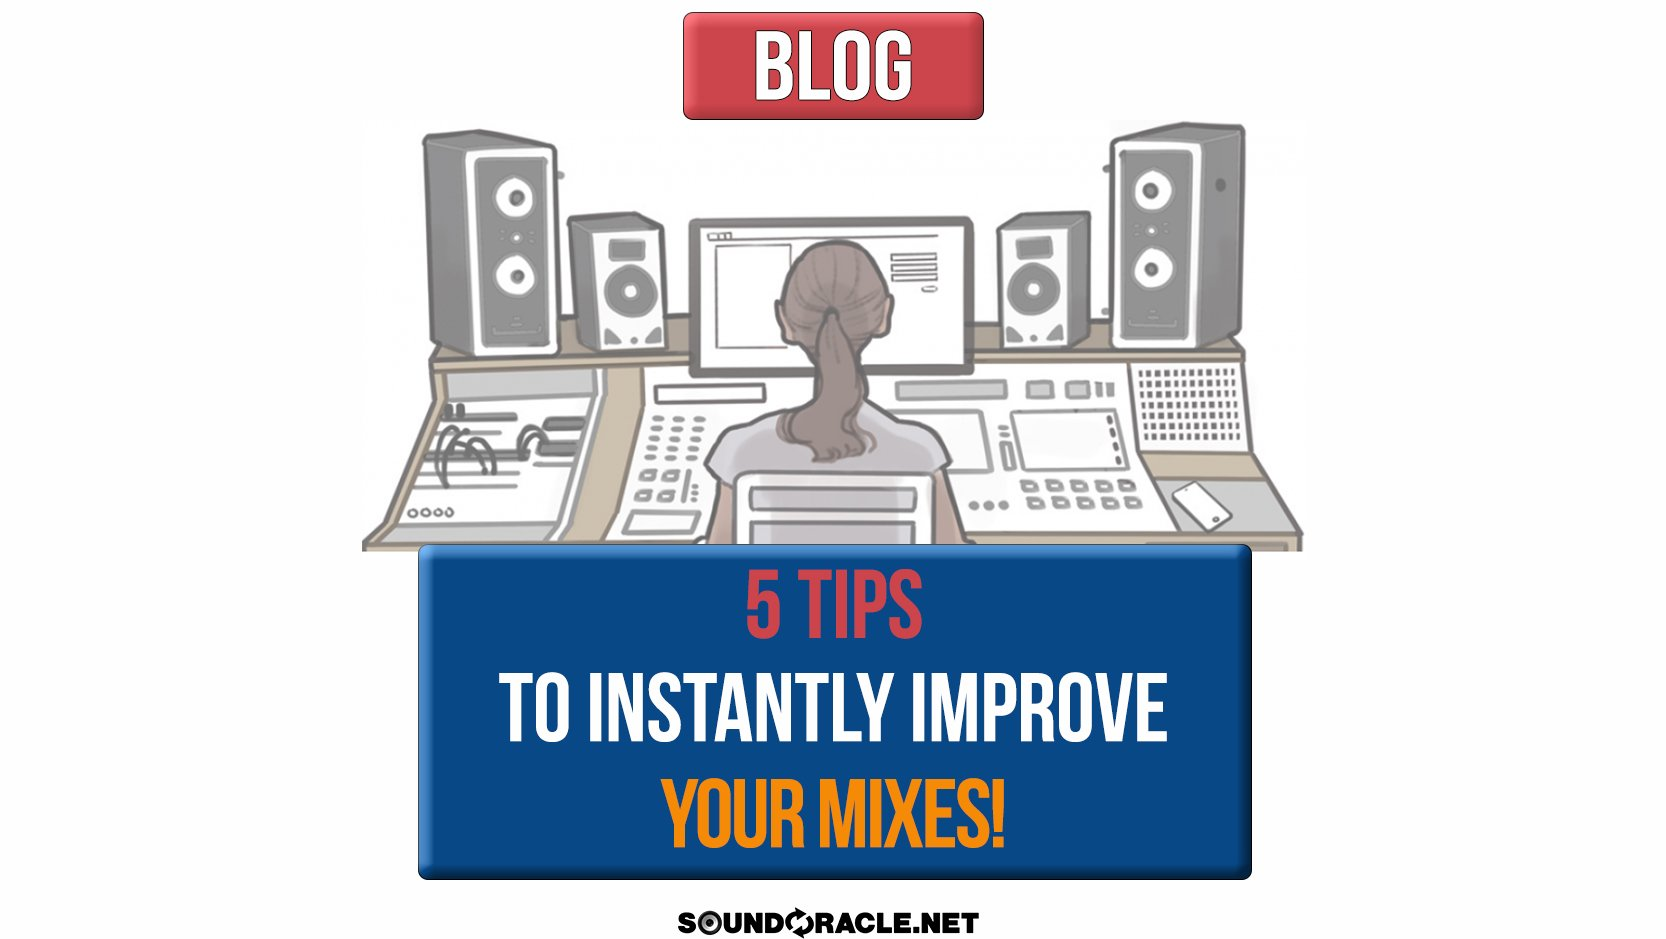 5 Tips To Instantly Improve Your Mixes!